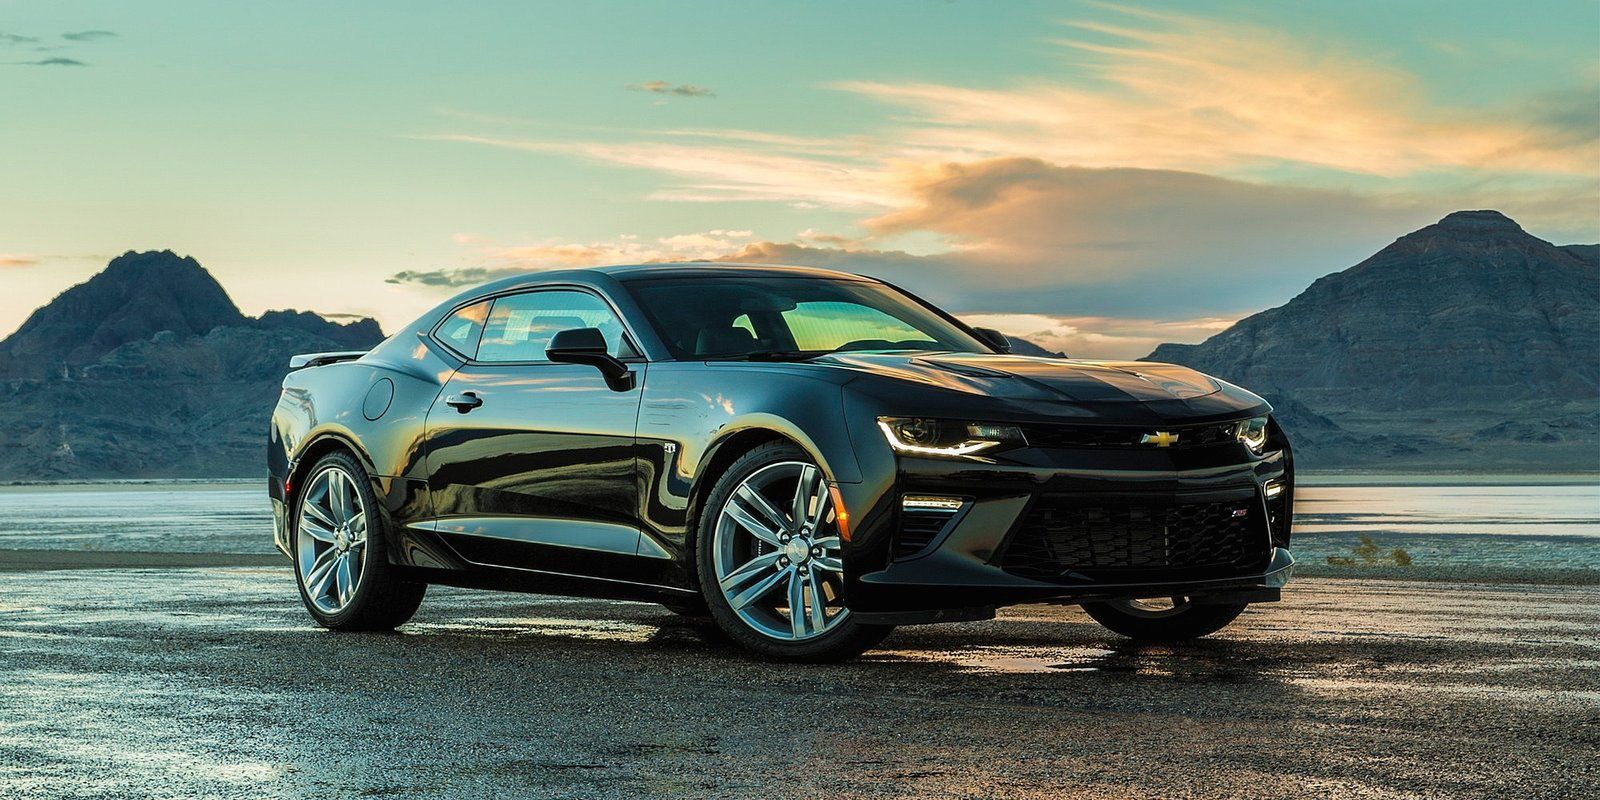 16 fastest cars under $40k in 2018 most powerful sedans \u0026 sports16 fastest cars under $40k in 2018 most powerful sedans \u0026 sports cars for less than $40,000